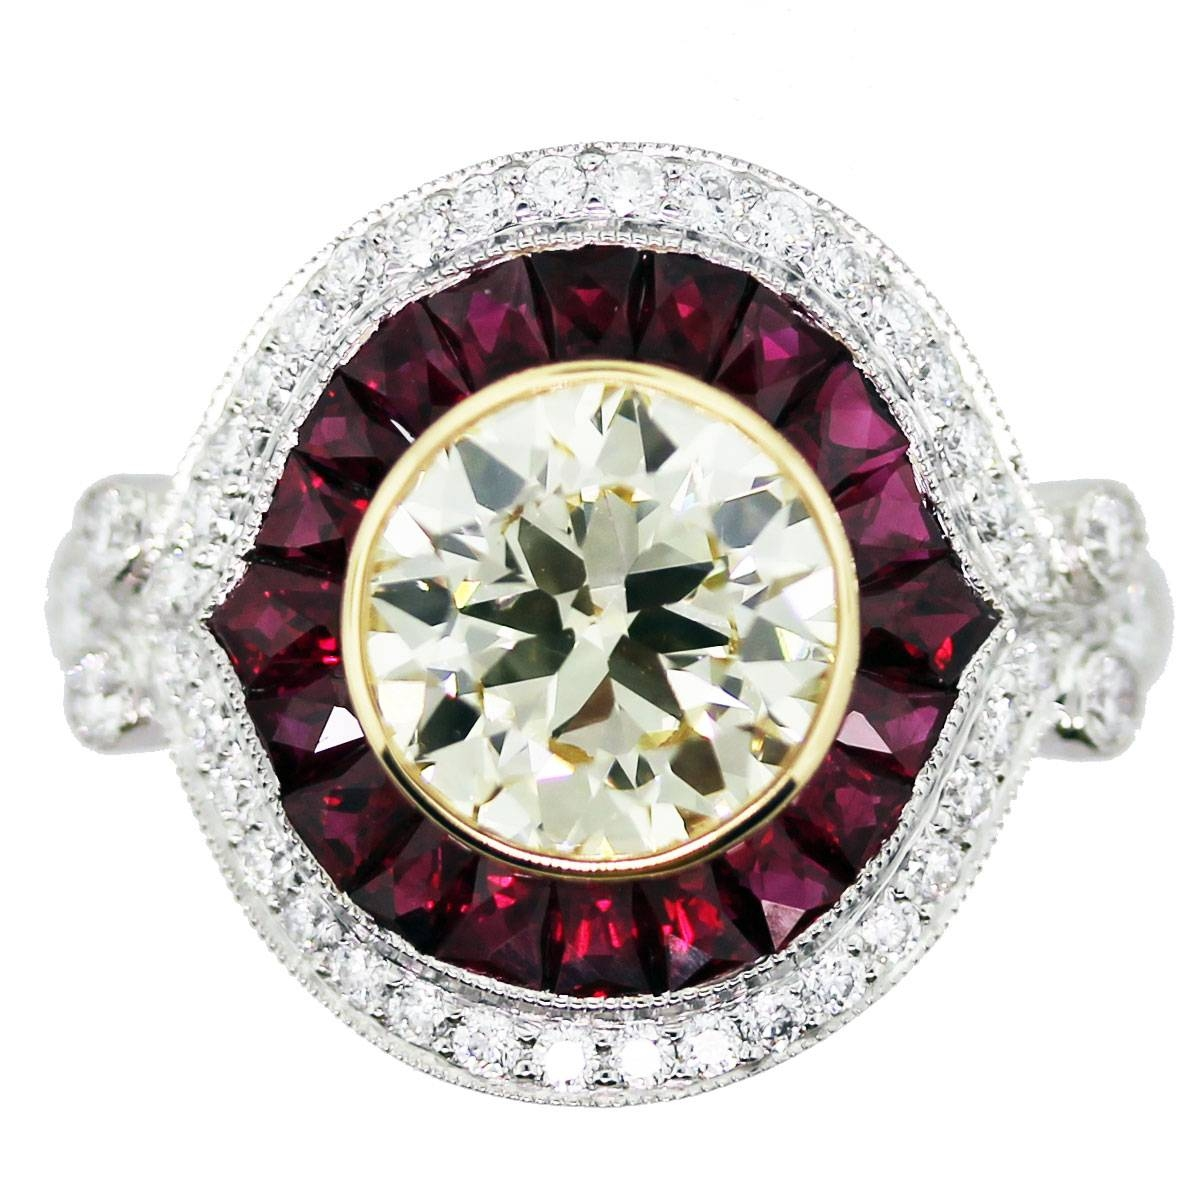 2 Carat Halo Style Engagement Ring Boca Raton With Regard To Diamond And Ruby Engagement Rings (View 1 of 15)